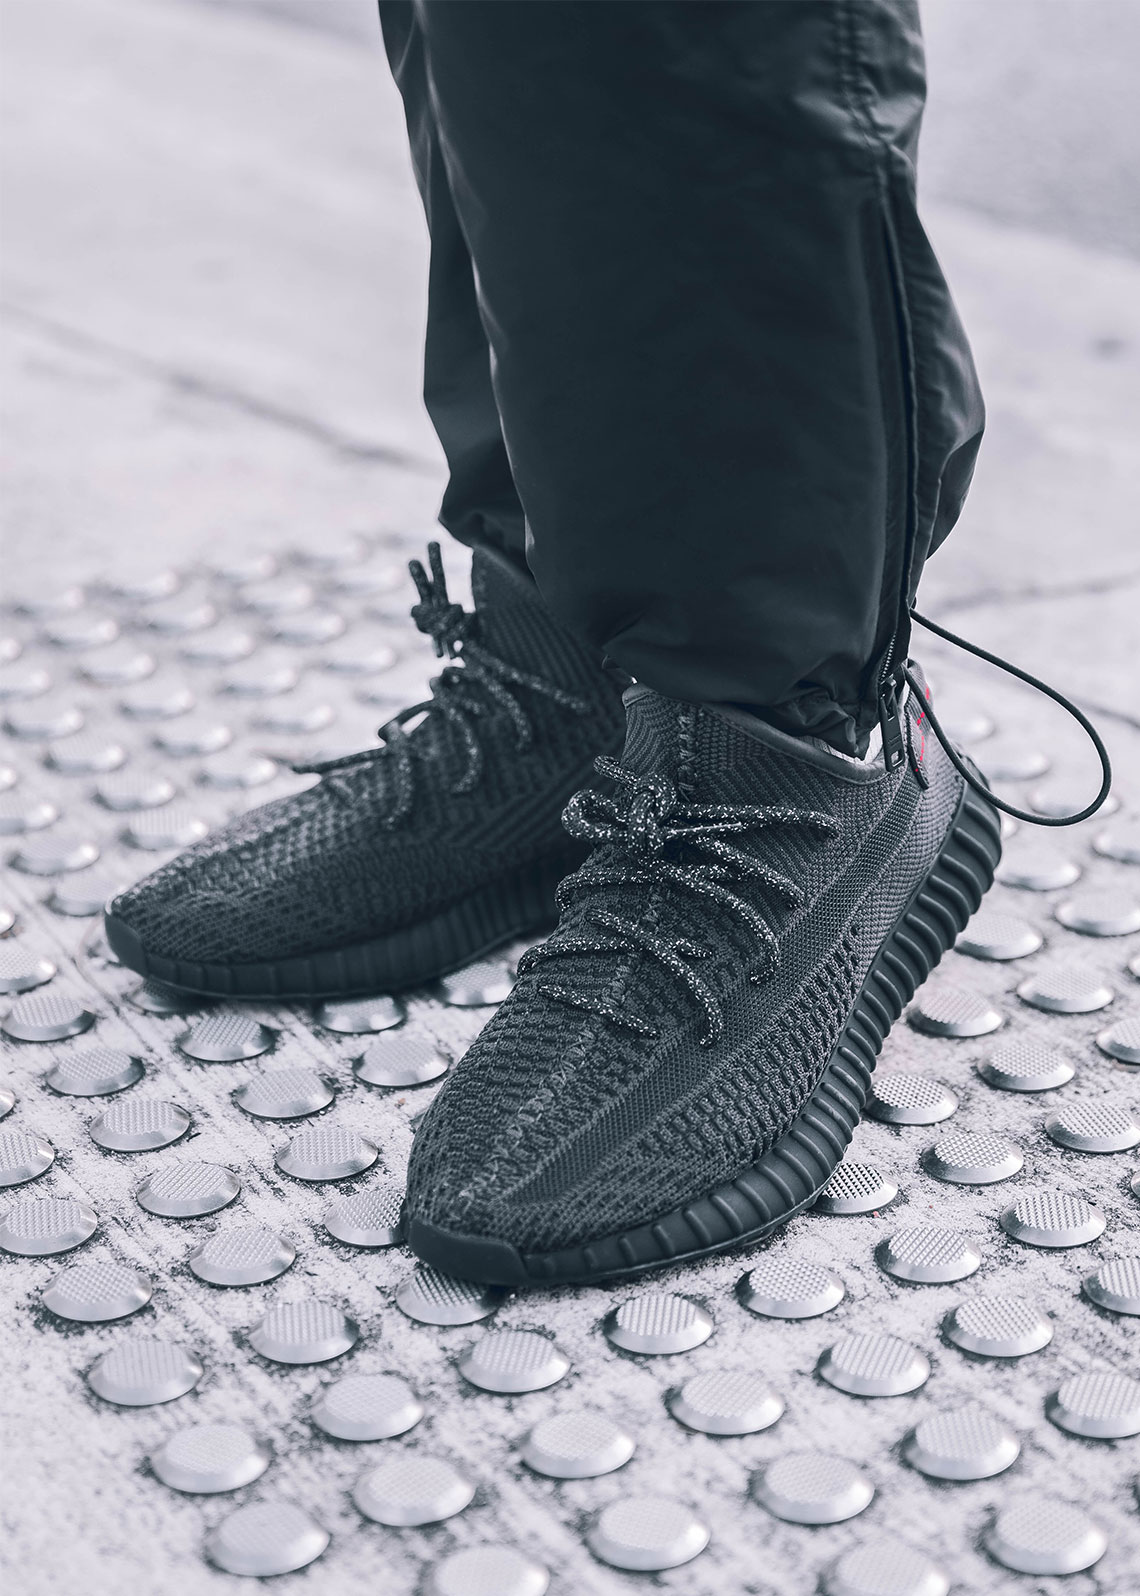 adidas yeezy 350 boost style number